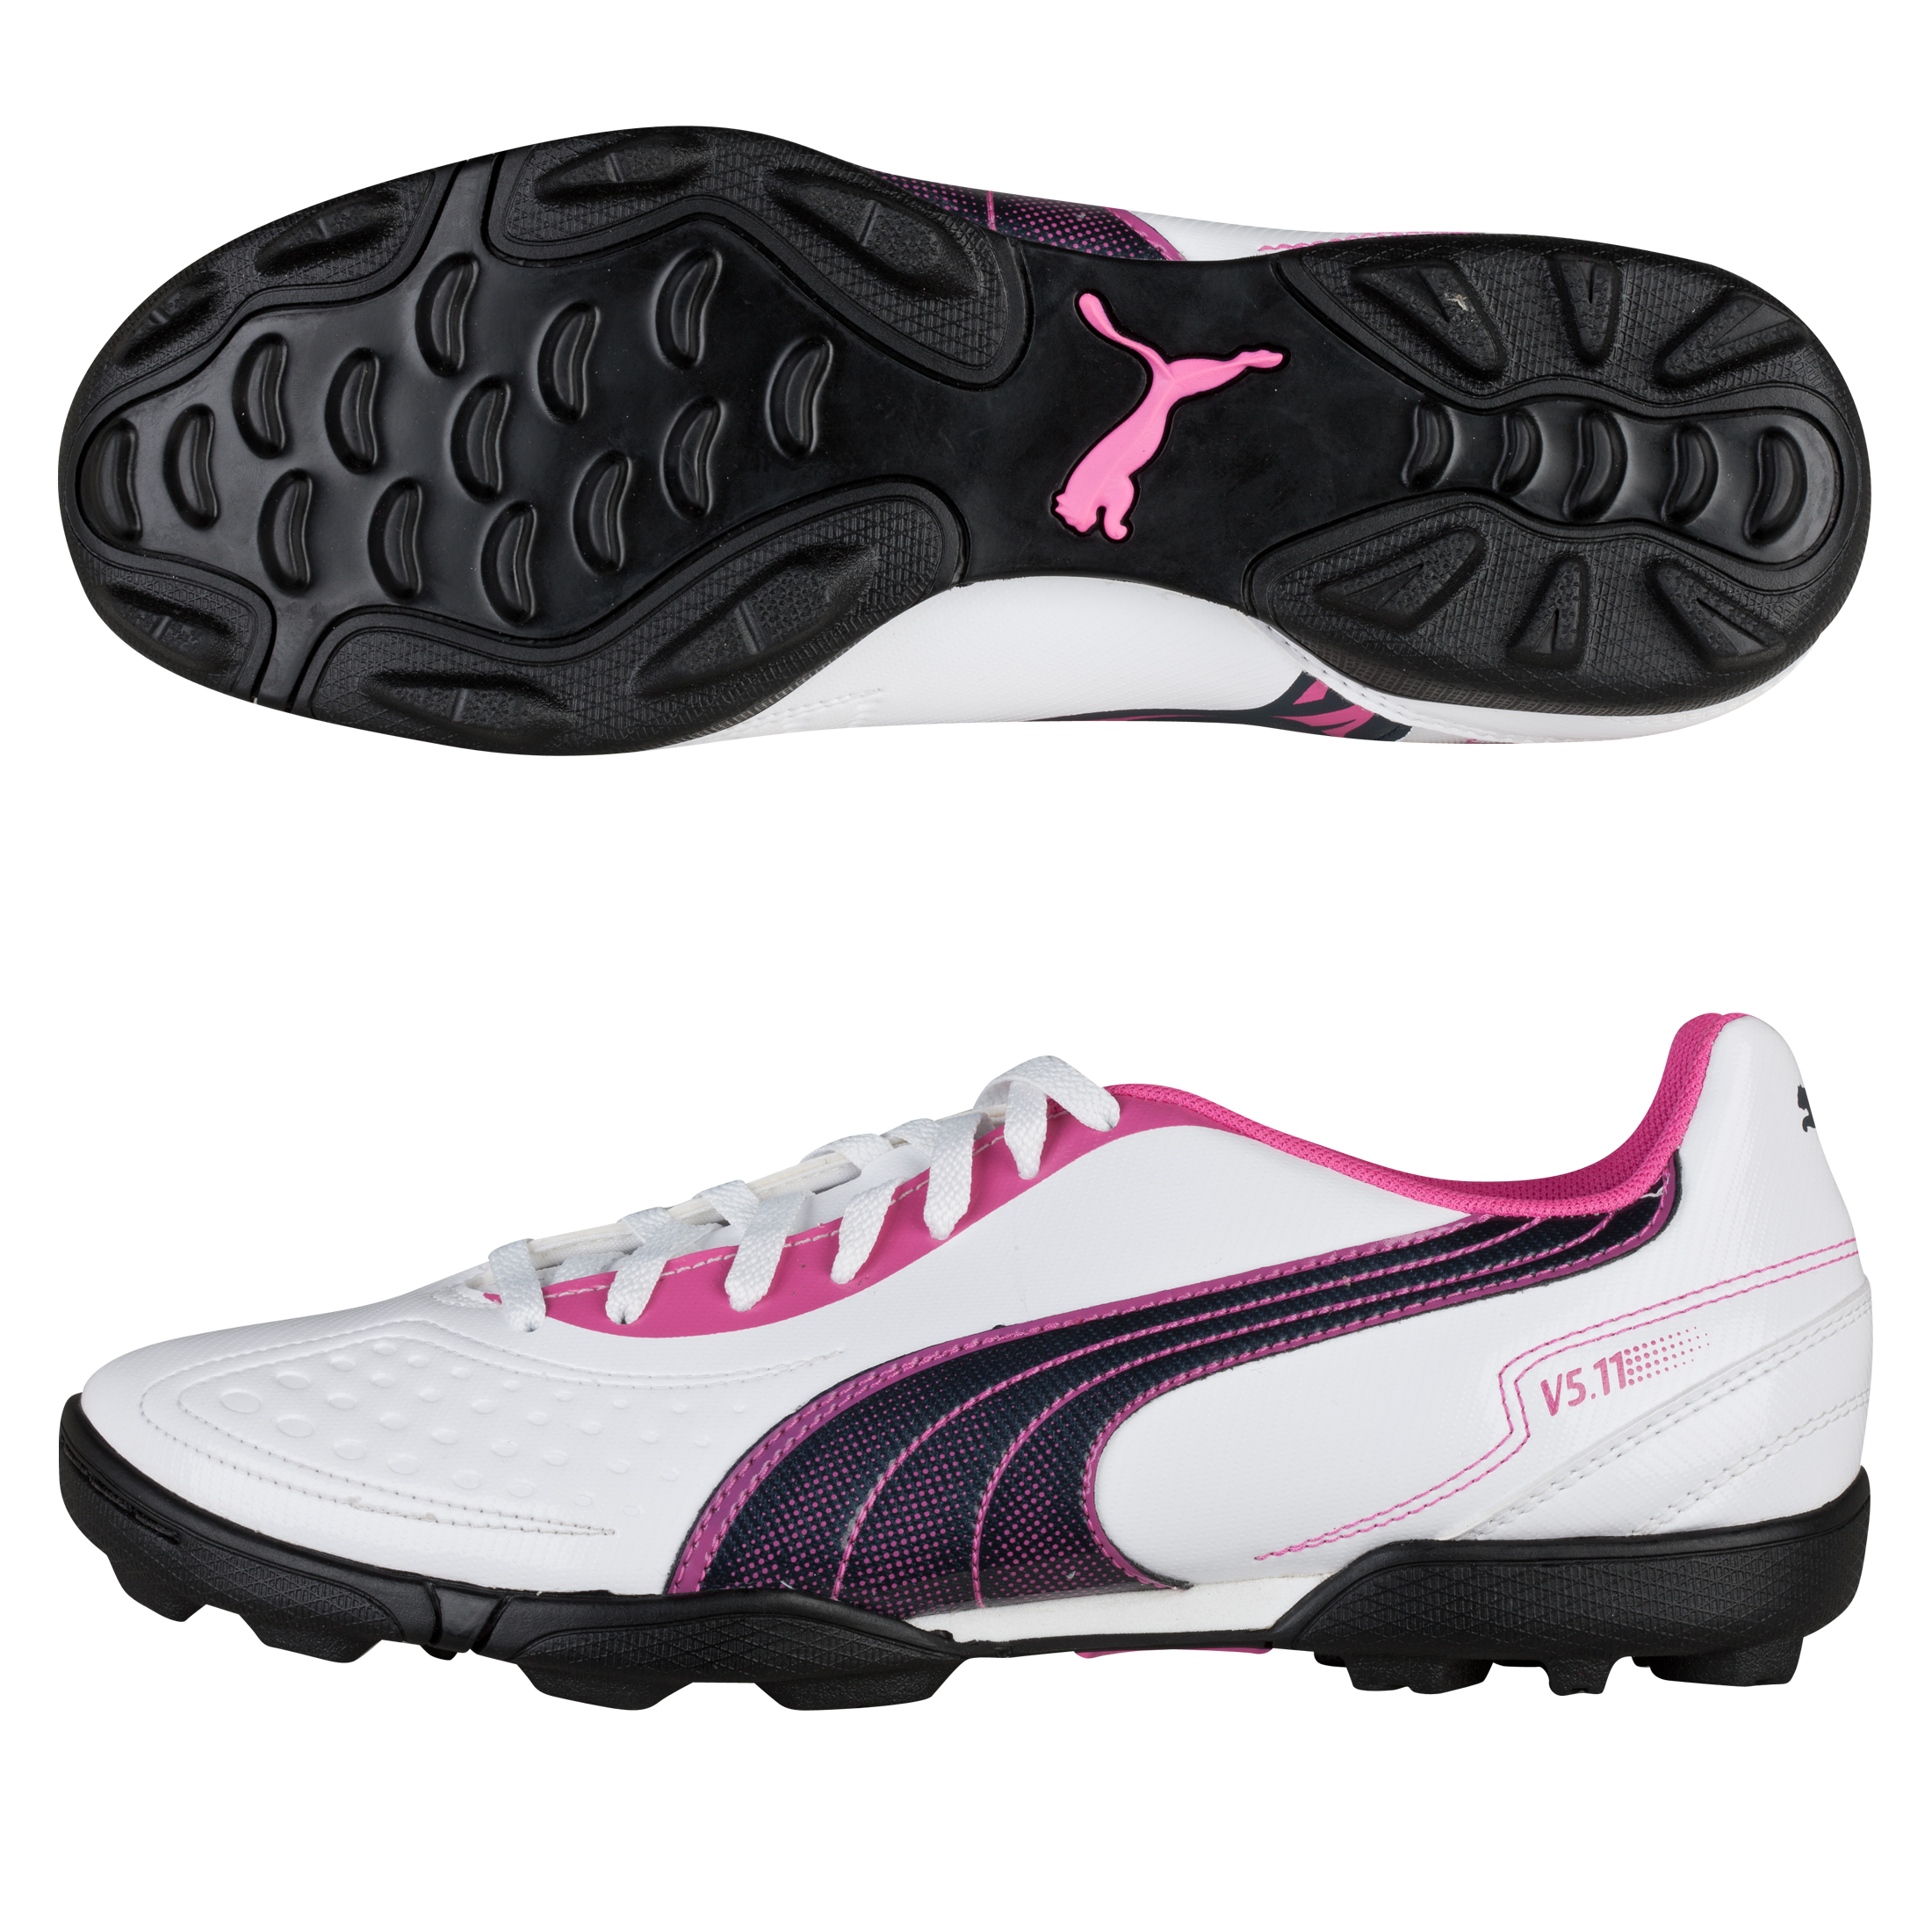 Puma v5.11 Astro Turf Trainers White/New Navy/Fluo Pink - Kids